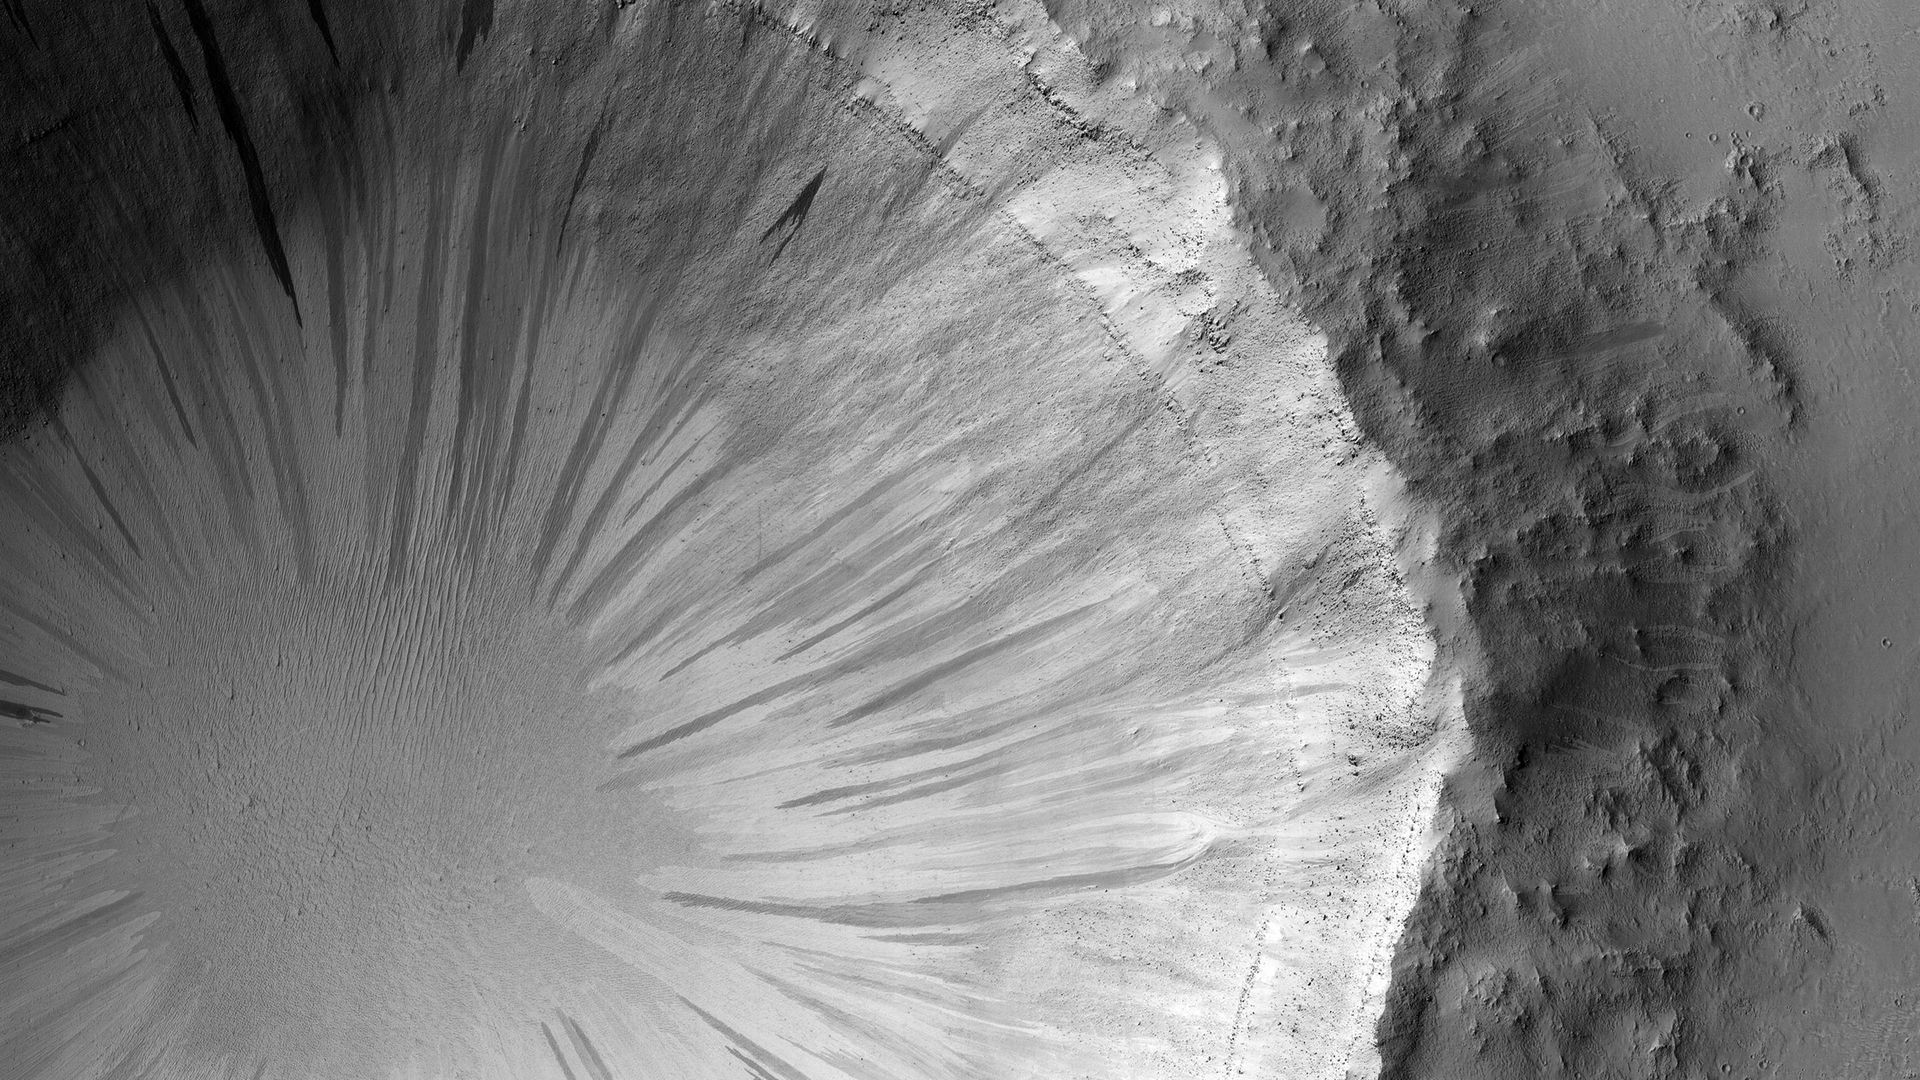 5. Your weekly dose of awe: A Martian eye